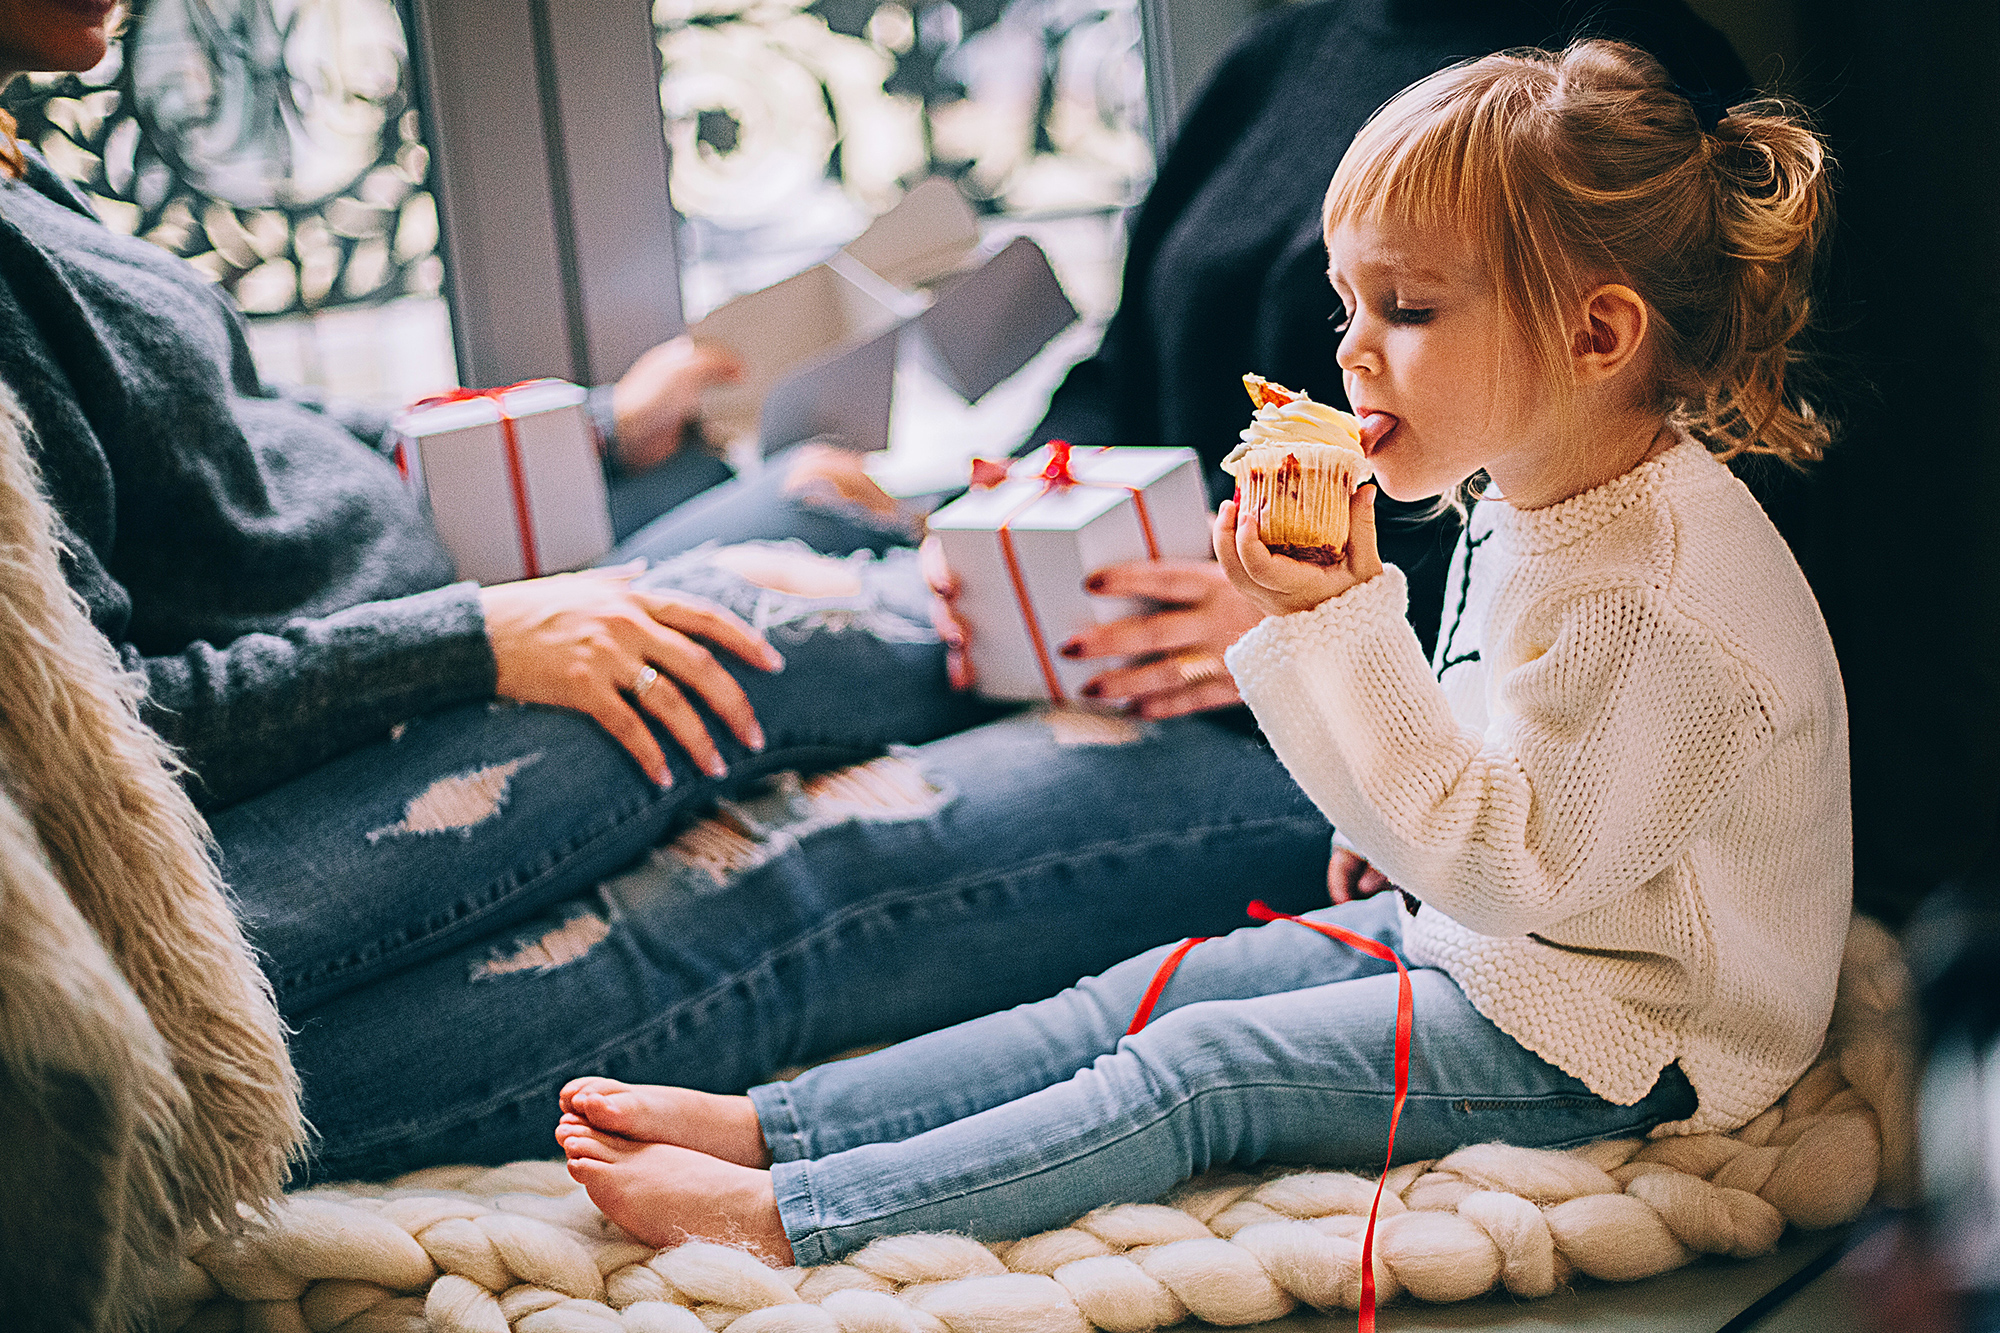 Photo of little girl eating holiday cupcakes with parents in the background